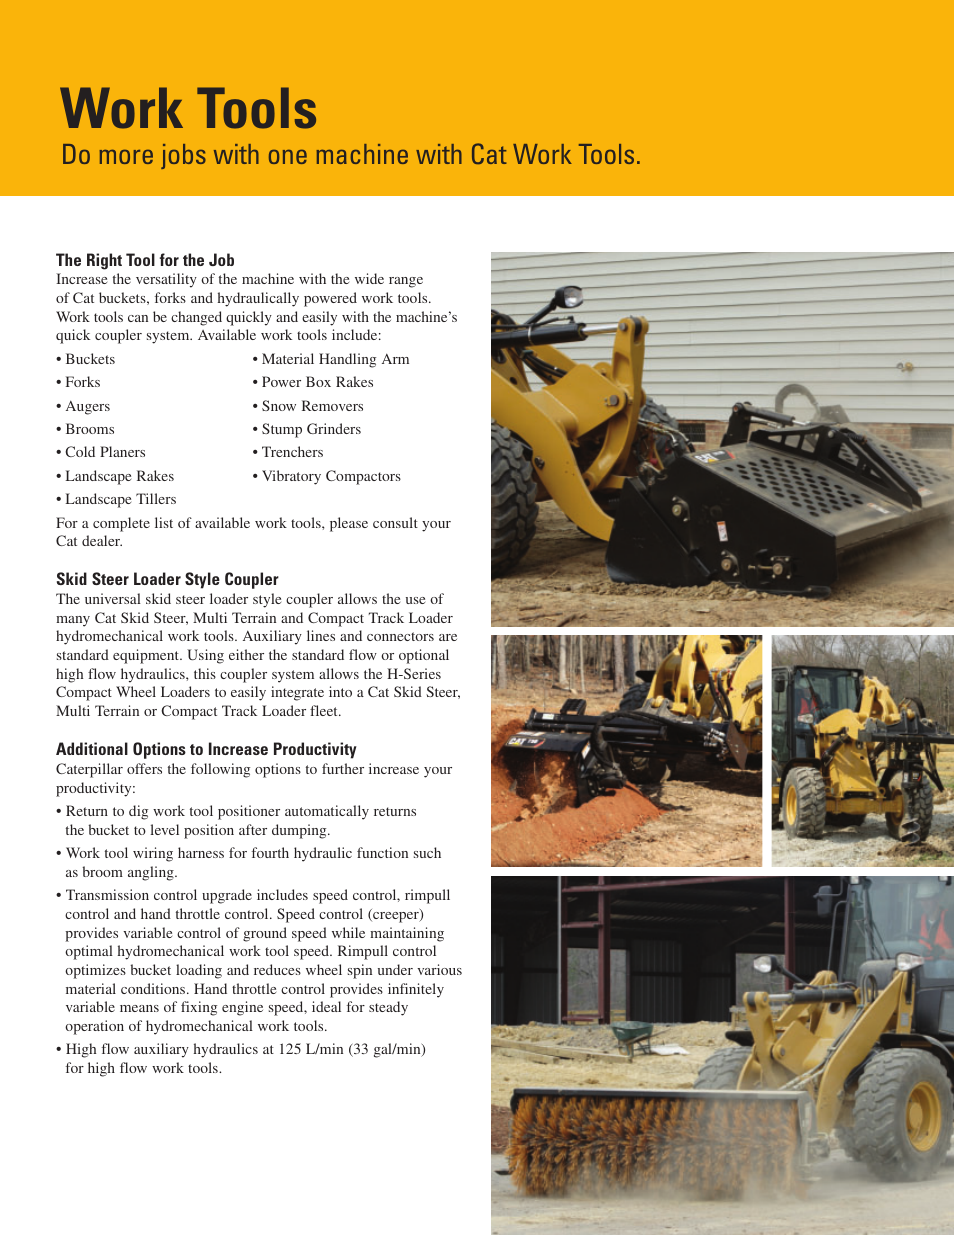 Work tools, Do more jobs with one machine with cat work